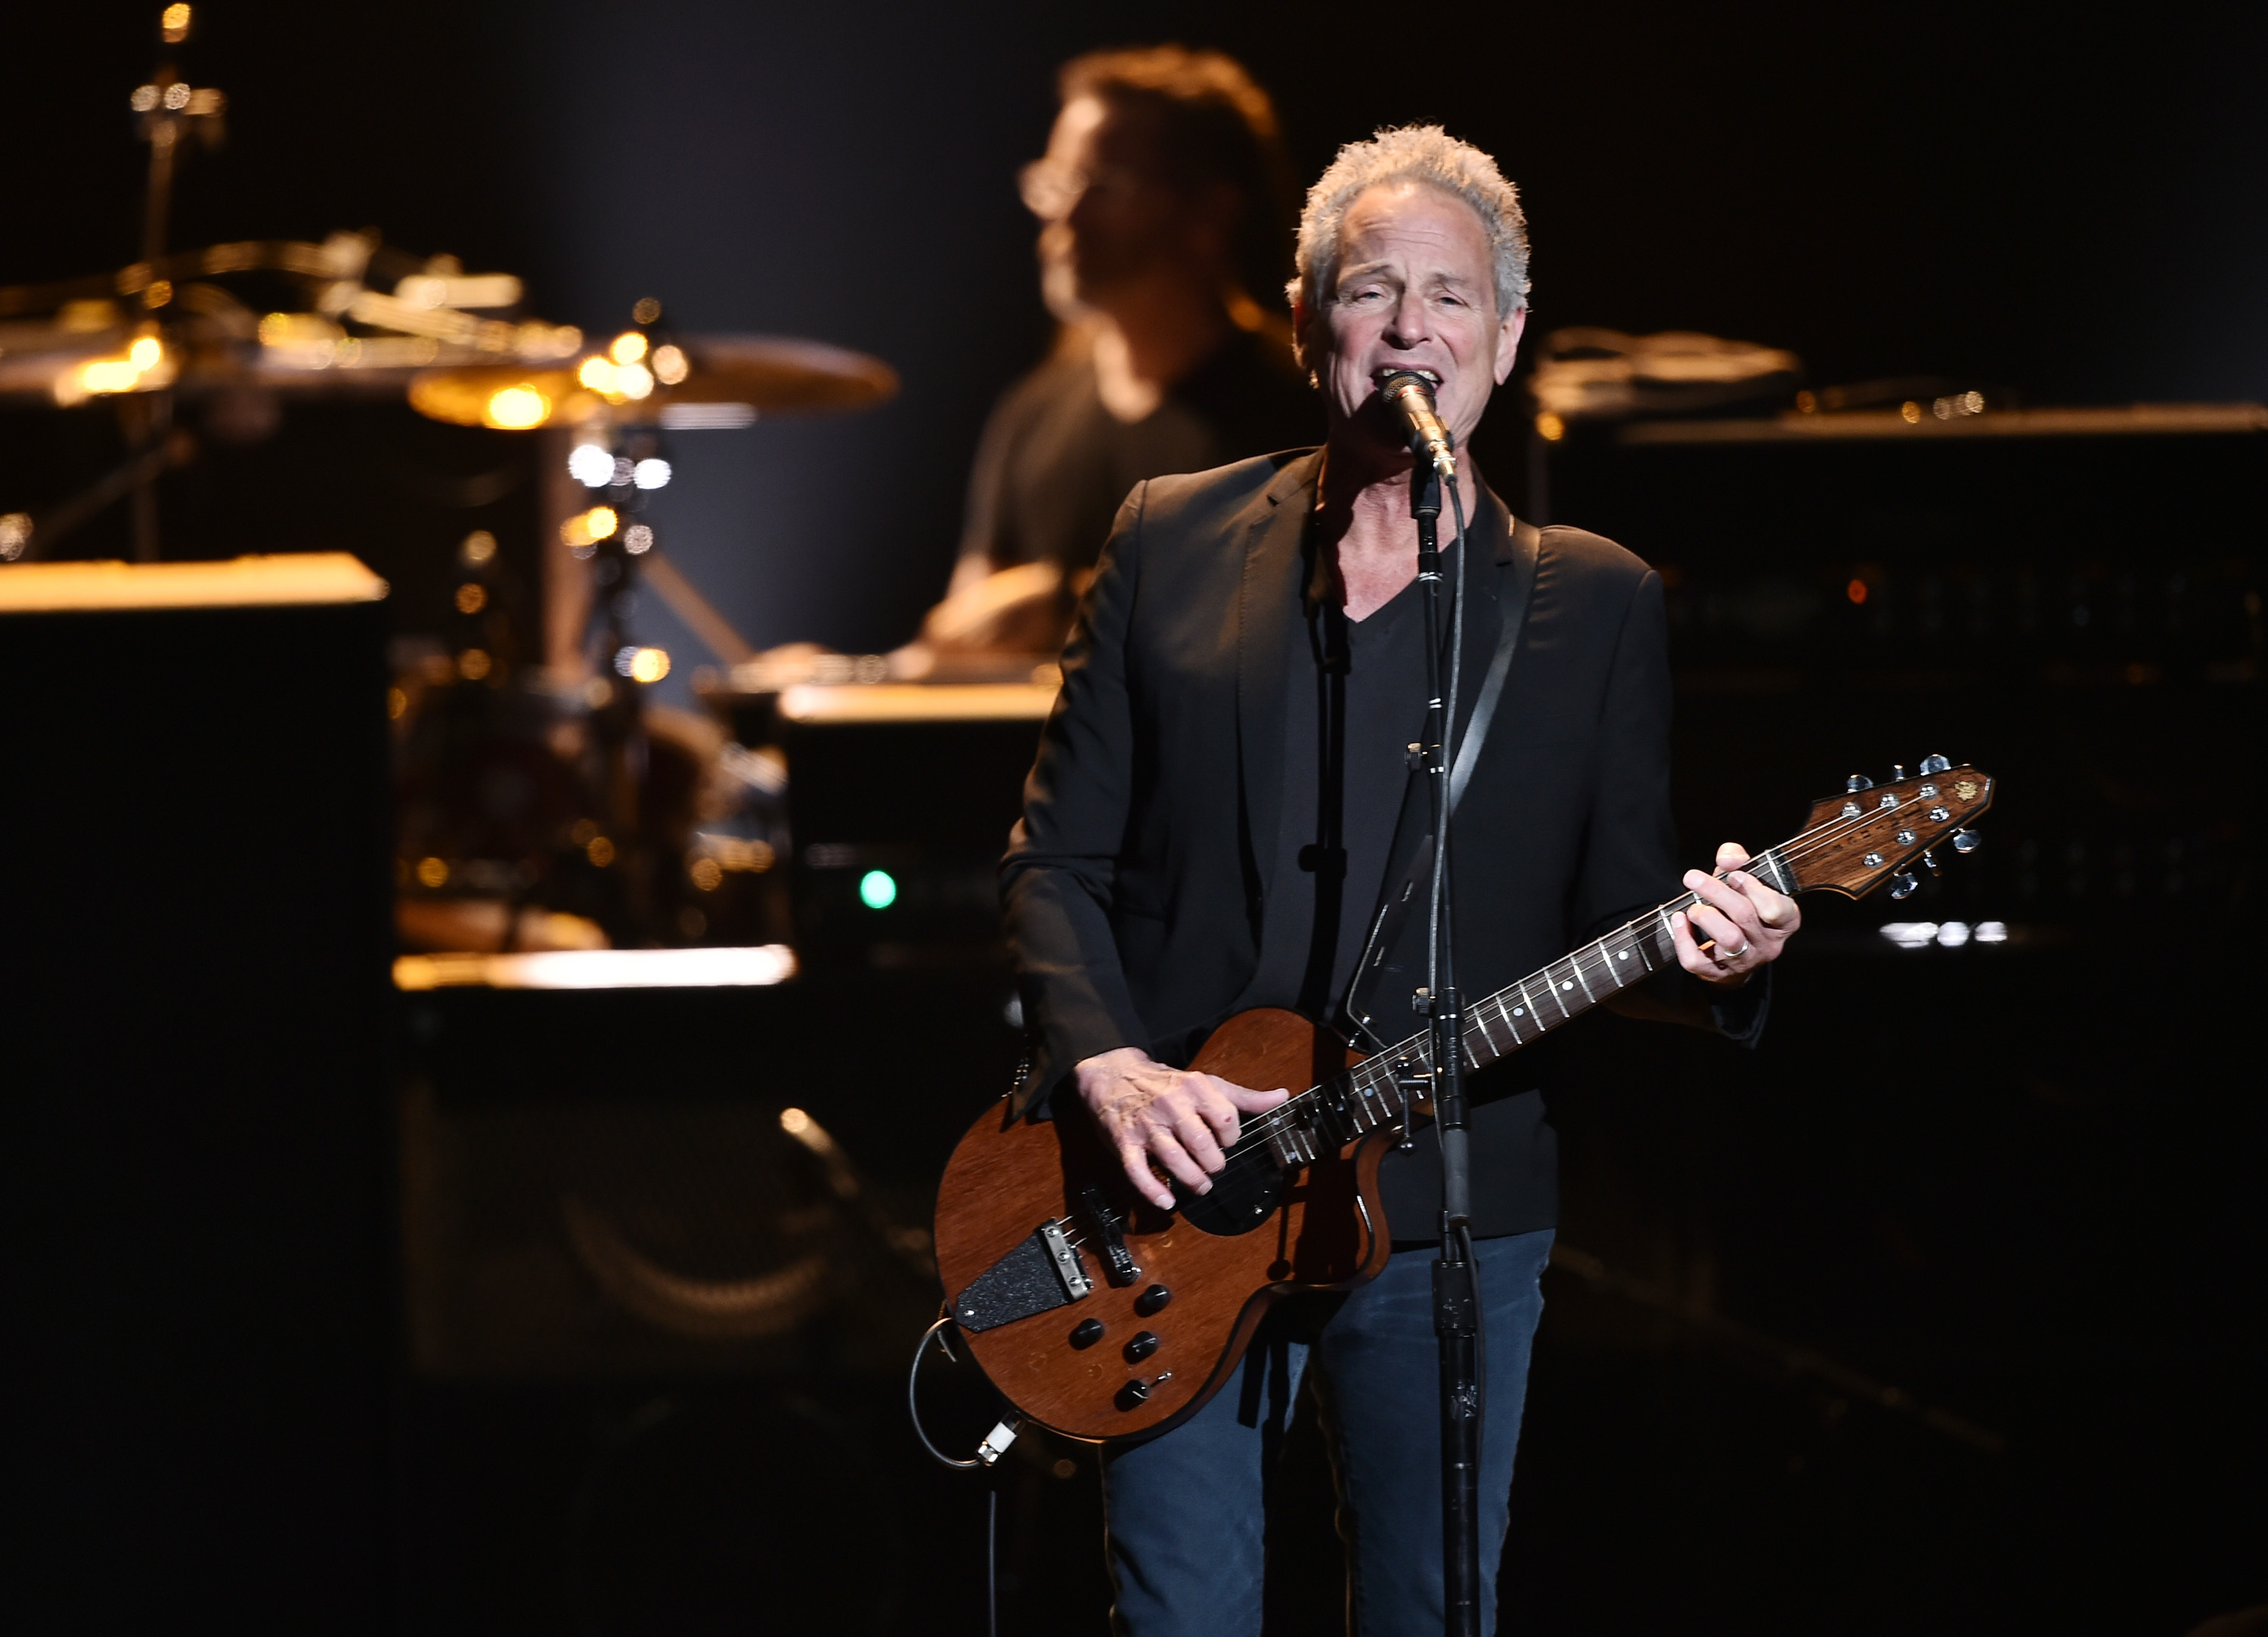 Lindsey Buckingham performs with Fleetwood Mac during MusiCares Person of the Year honoring Fleetwood Mac at Radio City Music Hall on January 26, 2018 in New York City. (Image Source: Getty Images)